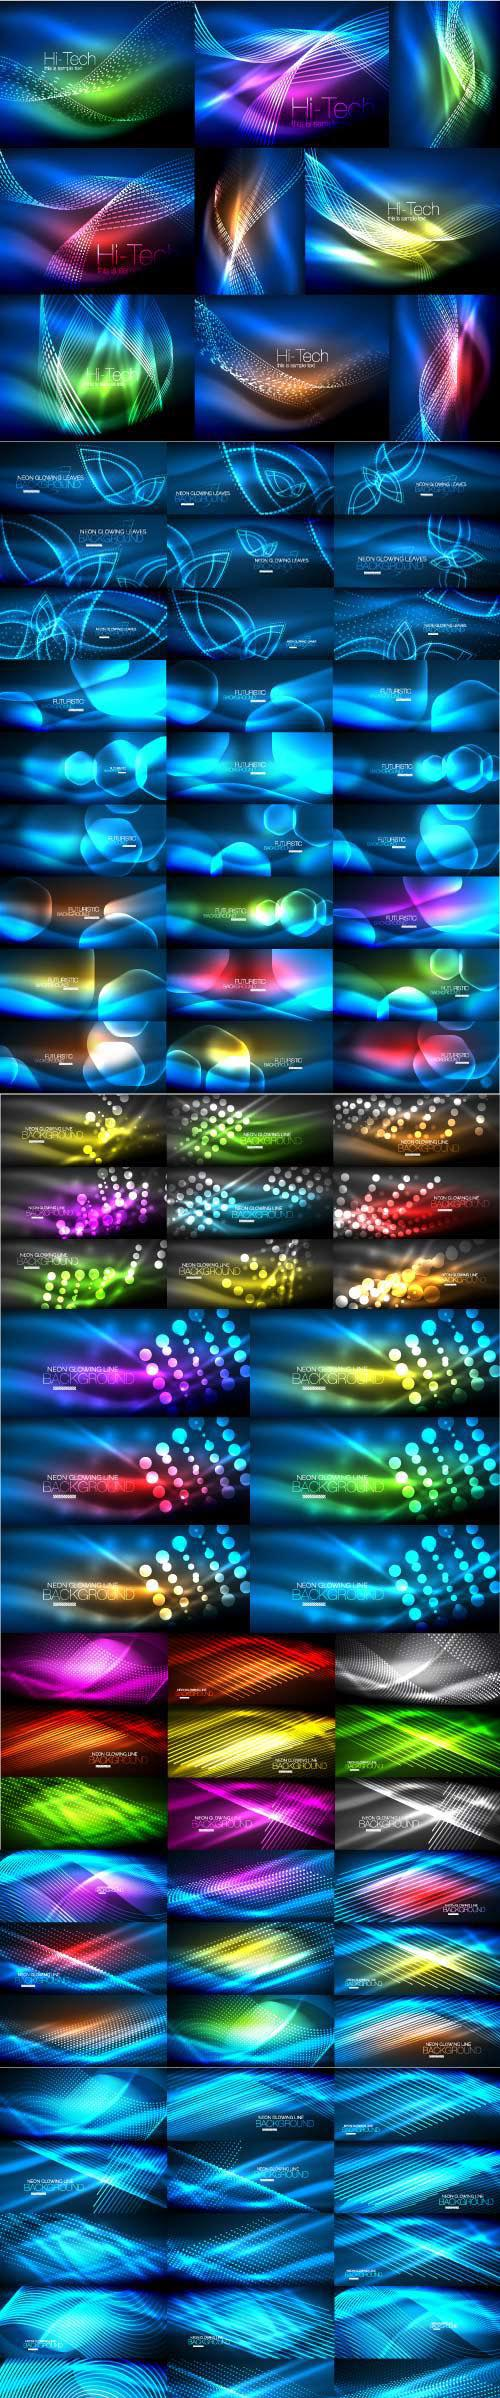 Mega collection of neon glowing waves # 4